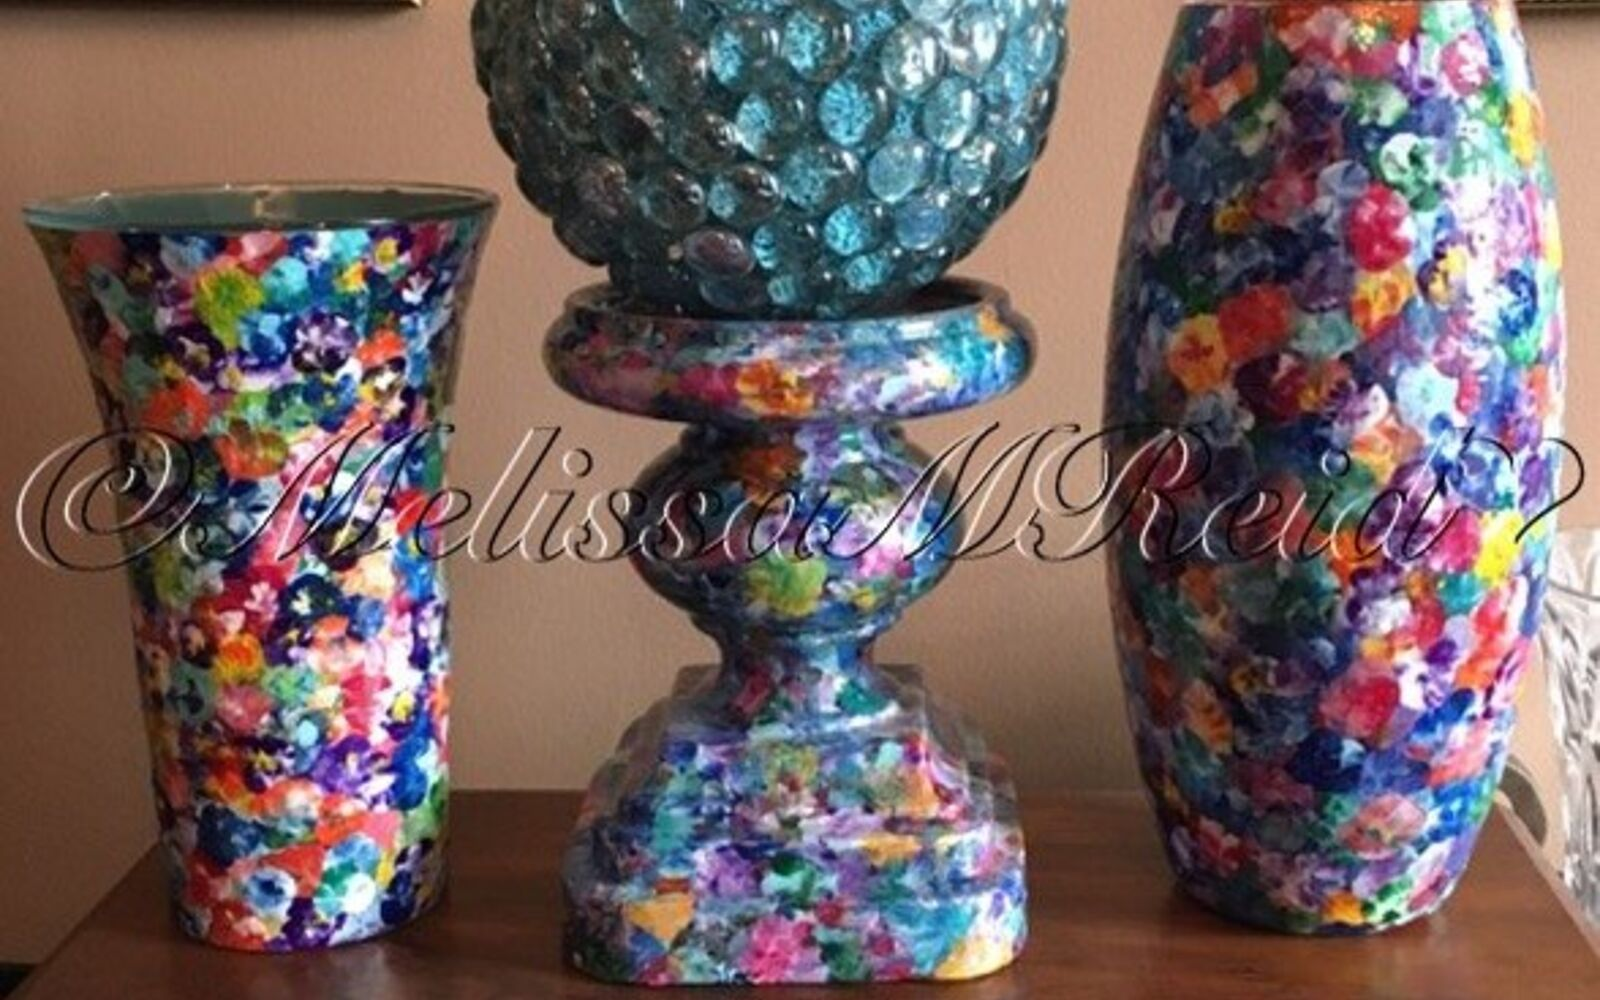 s 15 incredible vases you can make for your bestie on a budget, SPiT Pansies On Your Vase